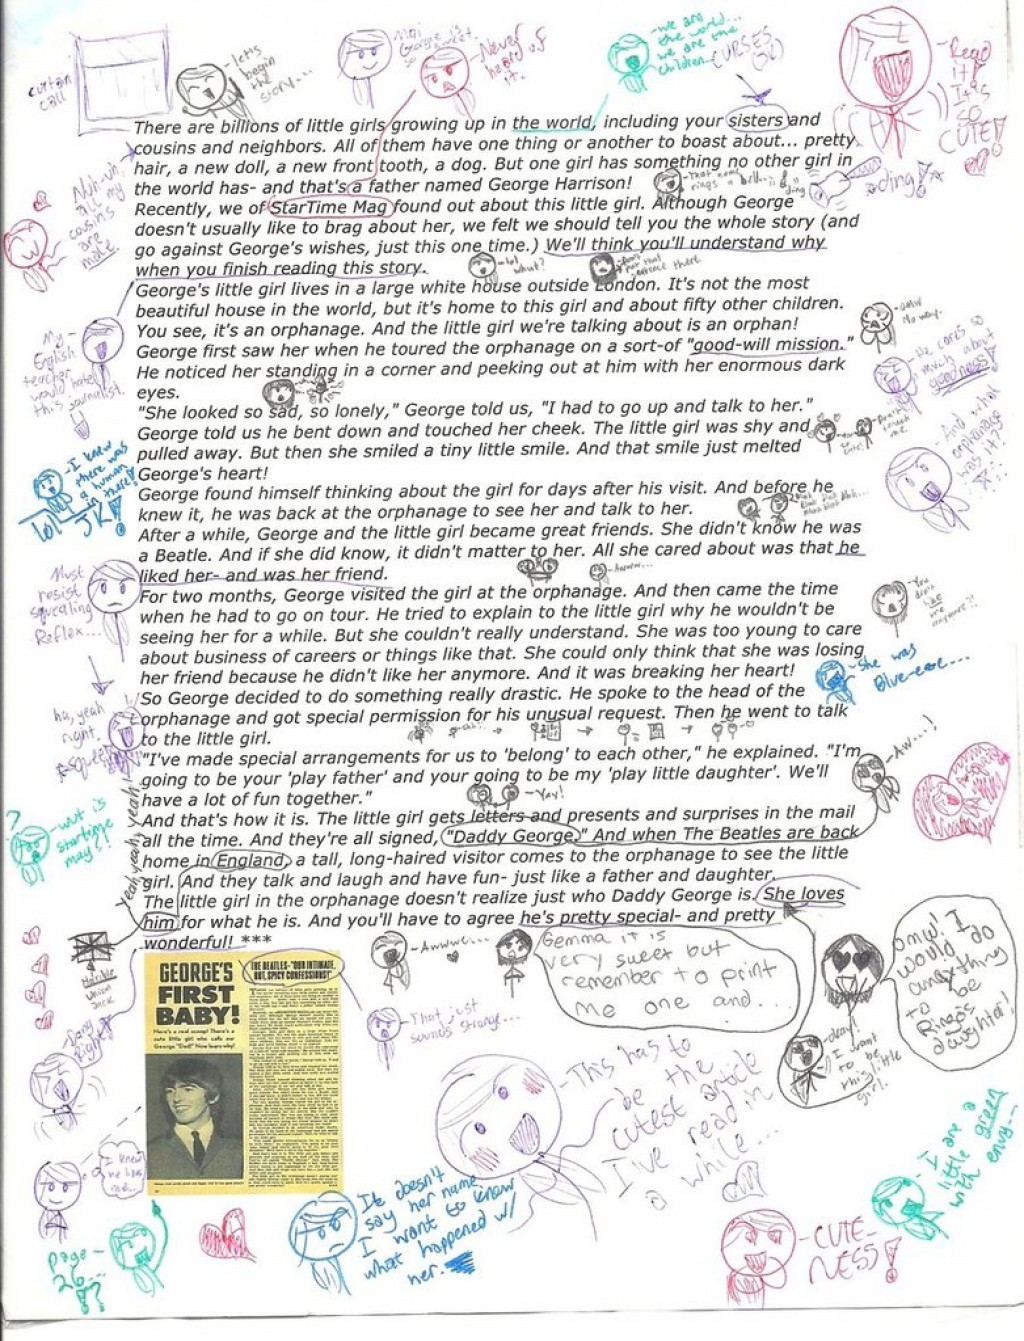 019 My Heavily Annotated Article From And Old Magazine By Dontmindmyname D553alj How To Annotate An Essay Wondrous A Movie In Critical Large